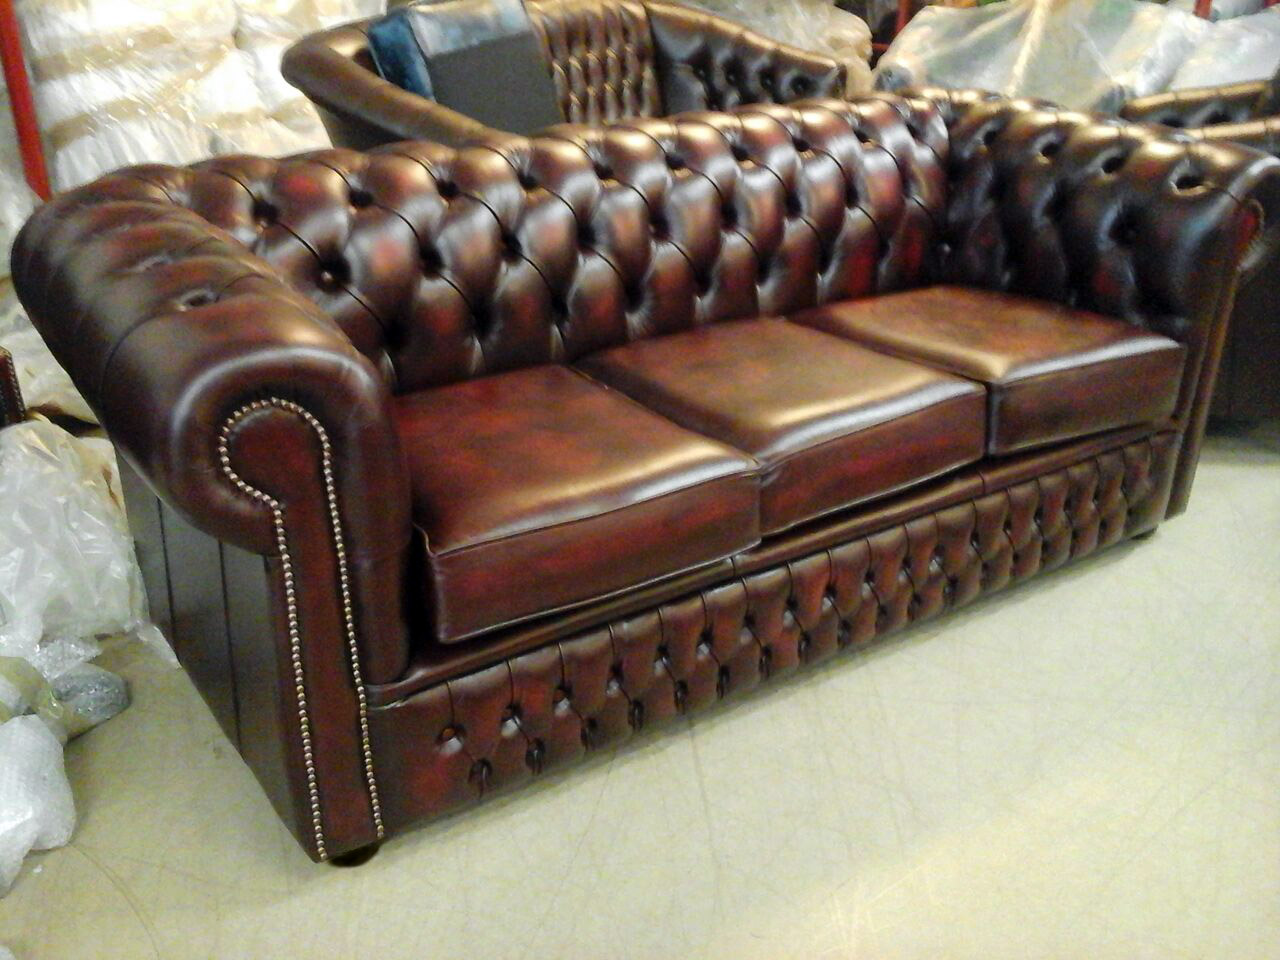 Divani Vintage Amazon Divani Chesterfield Vintage Originali